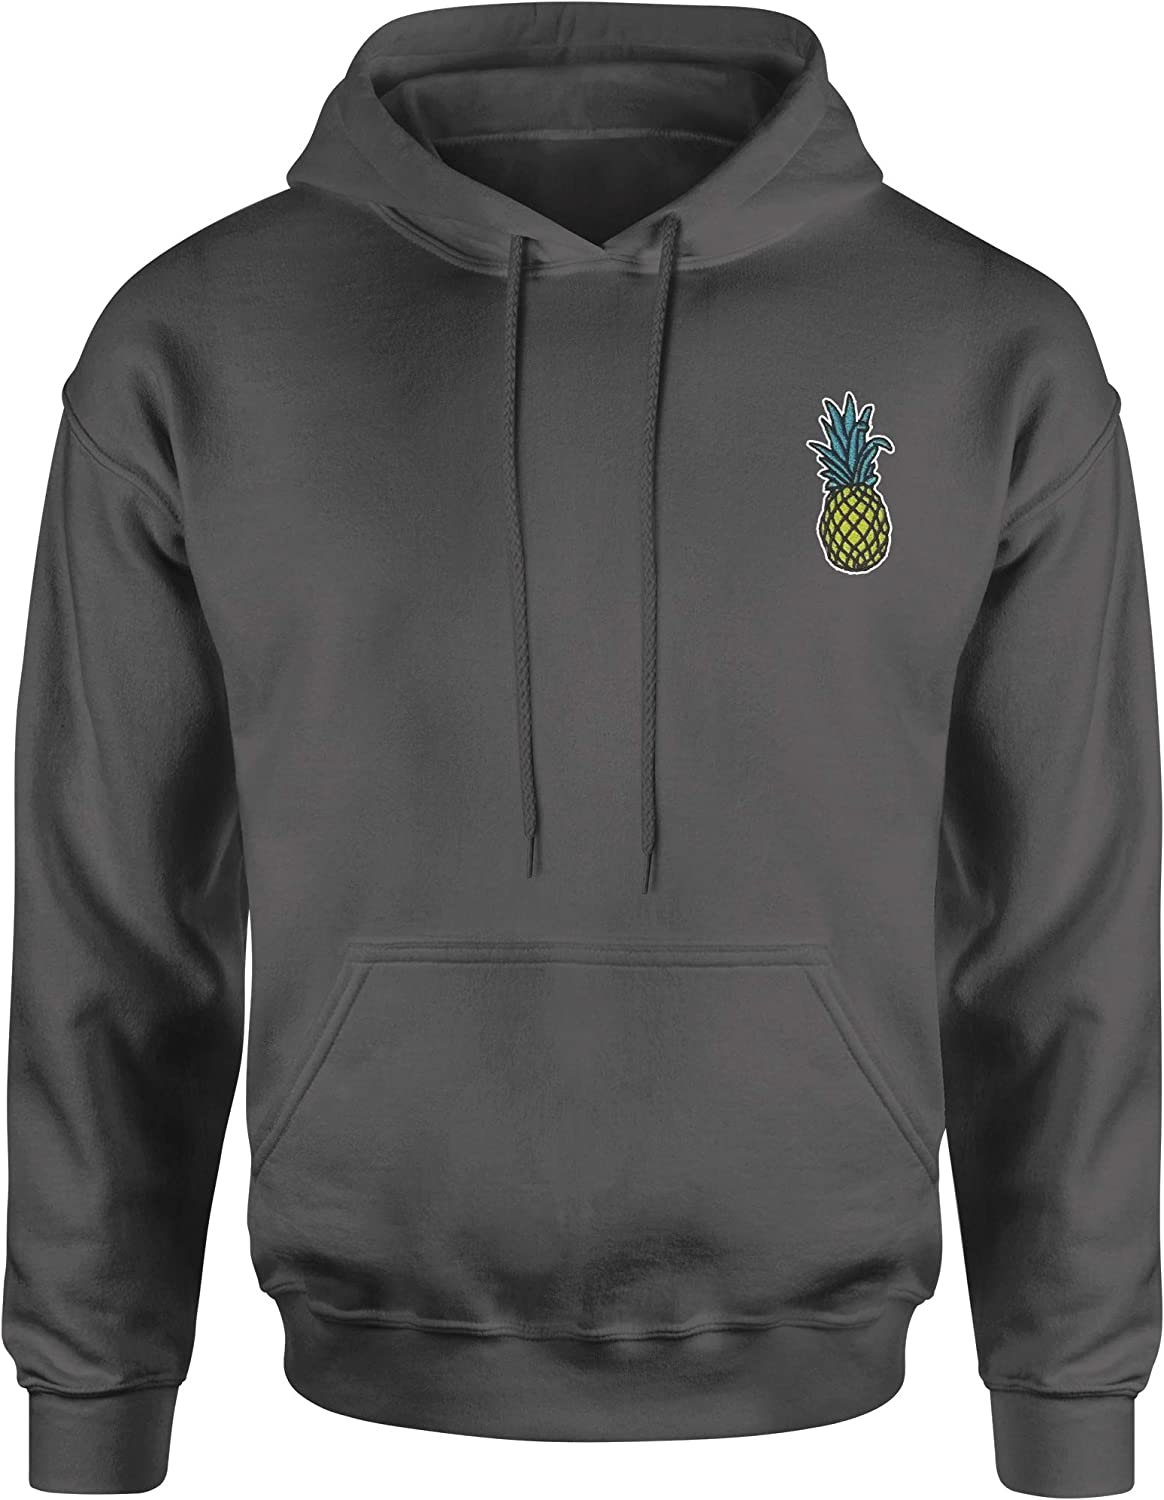 Expression Tees Embroidered Pineapple Patch (Pocket Print) Unisex Adult Hoodie